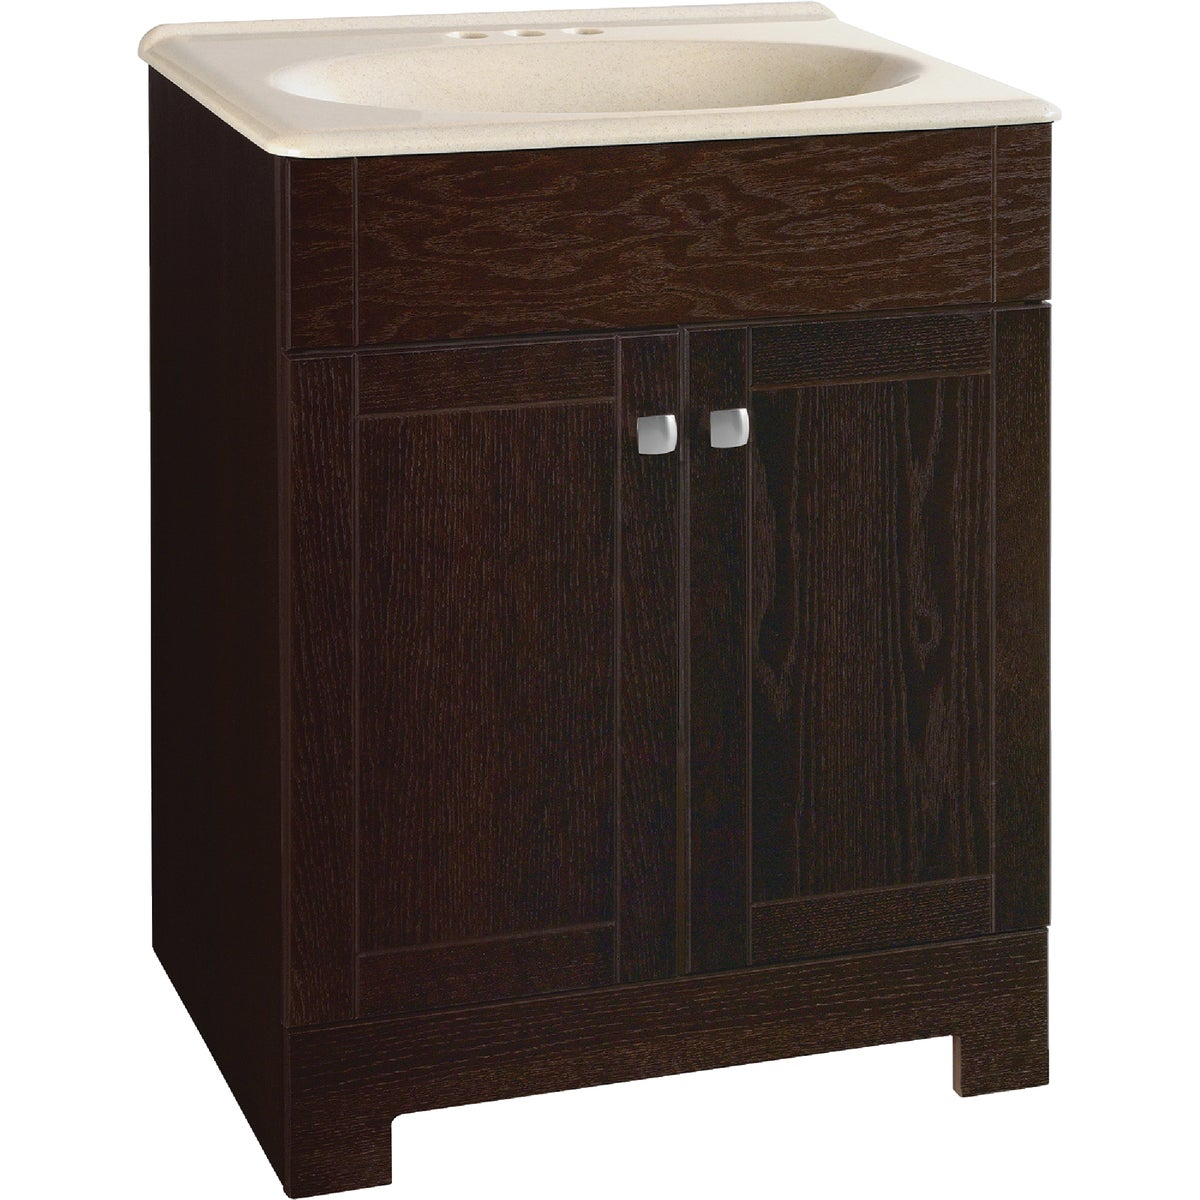 "SEDONA 24"" COMBO VANITY - CBPPFSJVO24 by RSI Home Products"